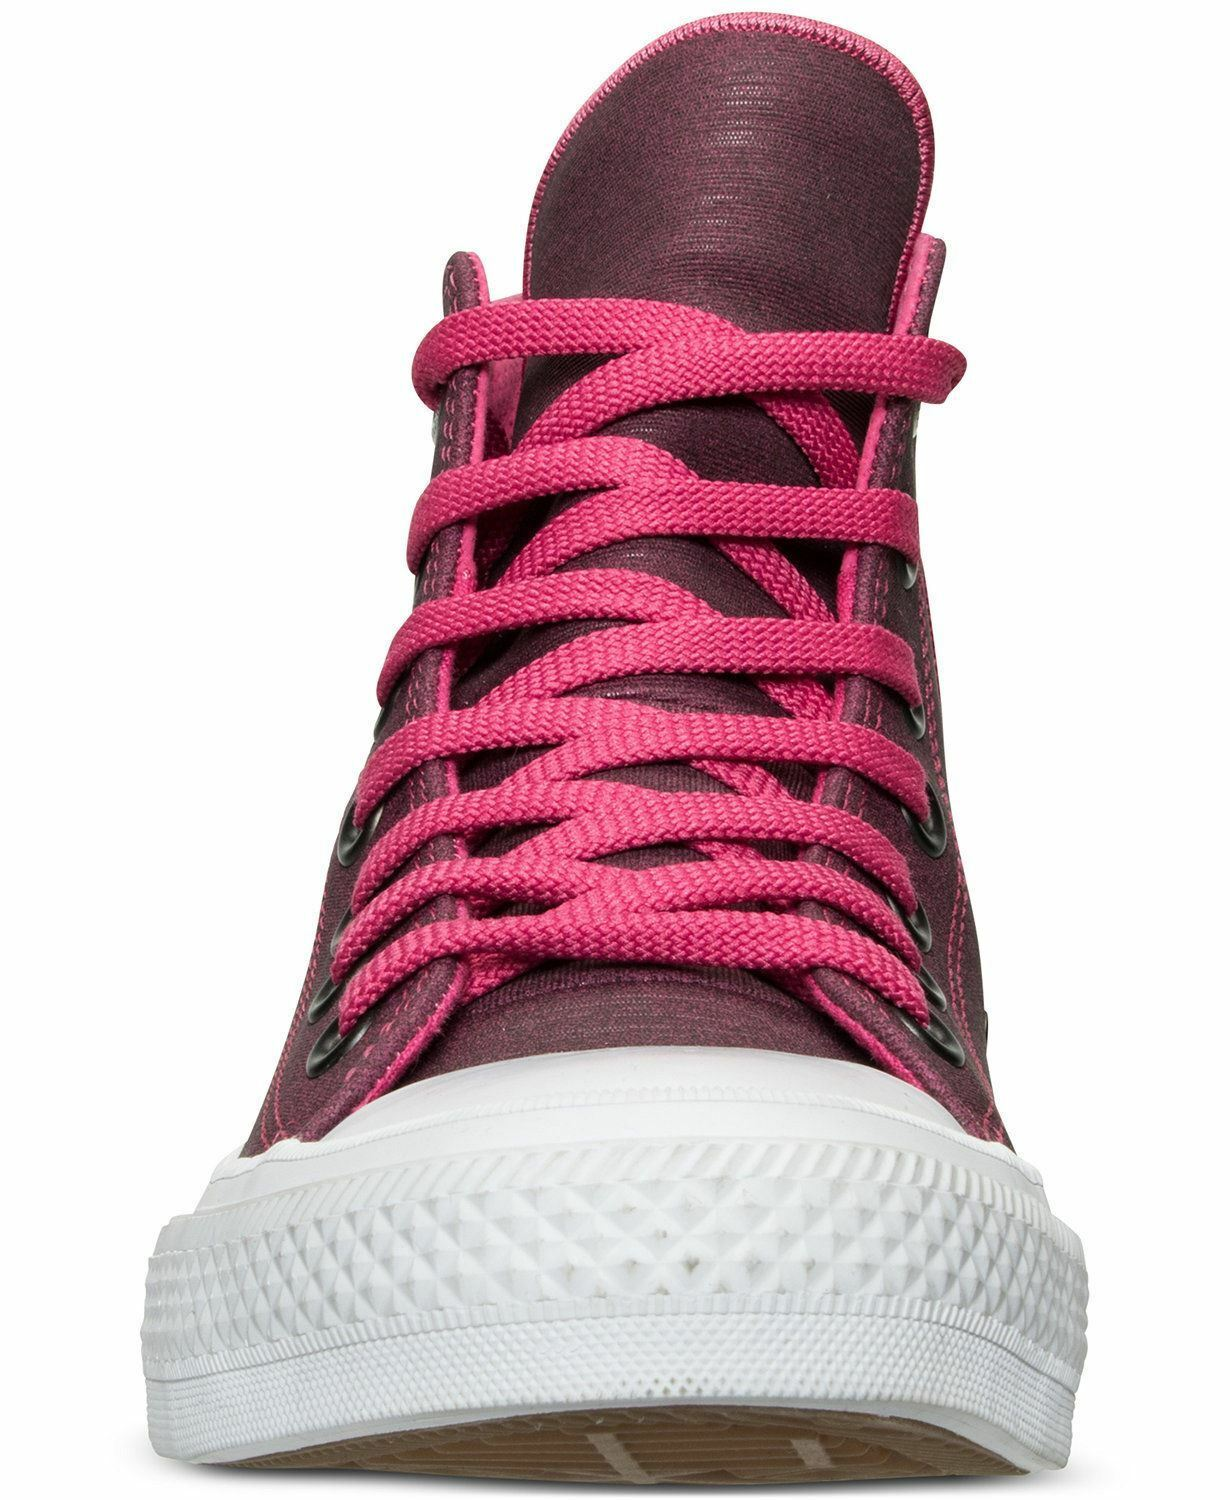 femmes Athletic baskets Converse Chuck Taylor All Star Star Star II High Top rose 154028C 53fce0